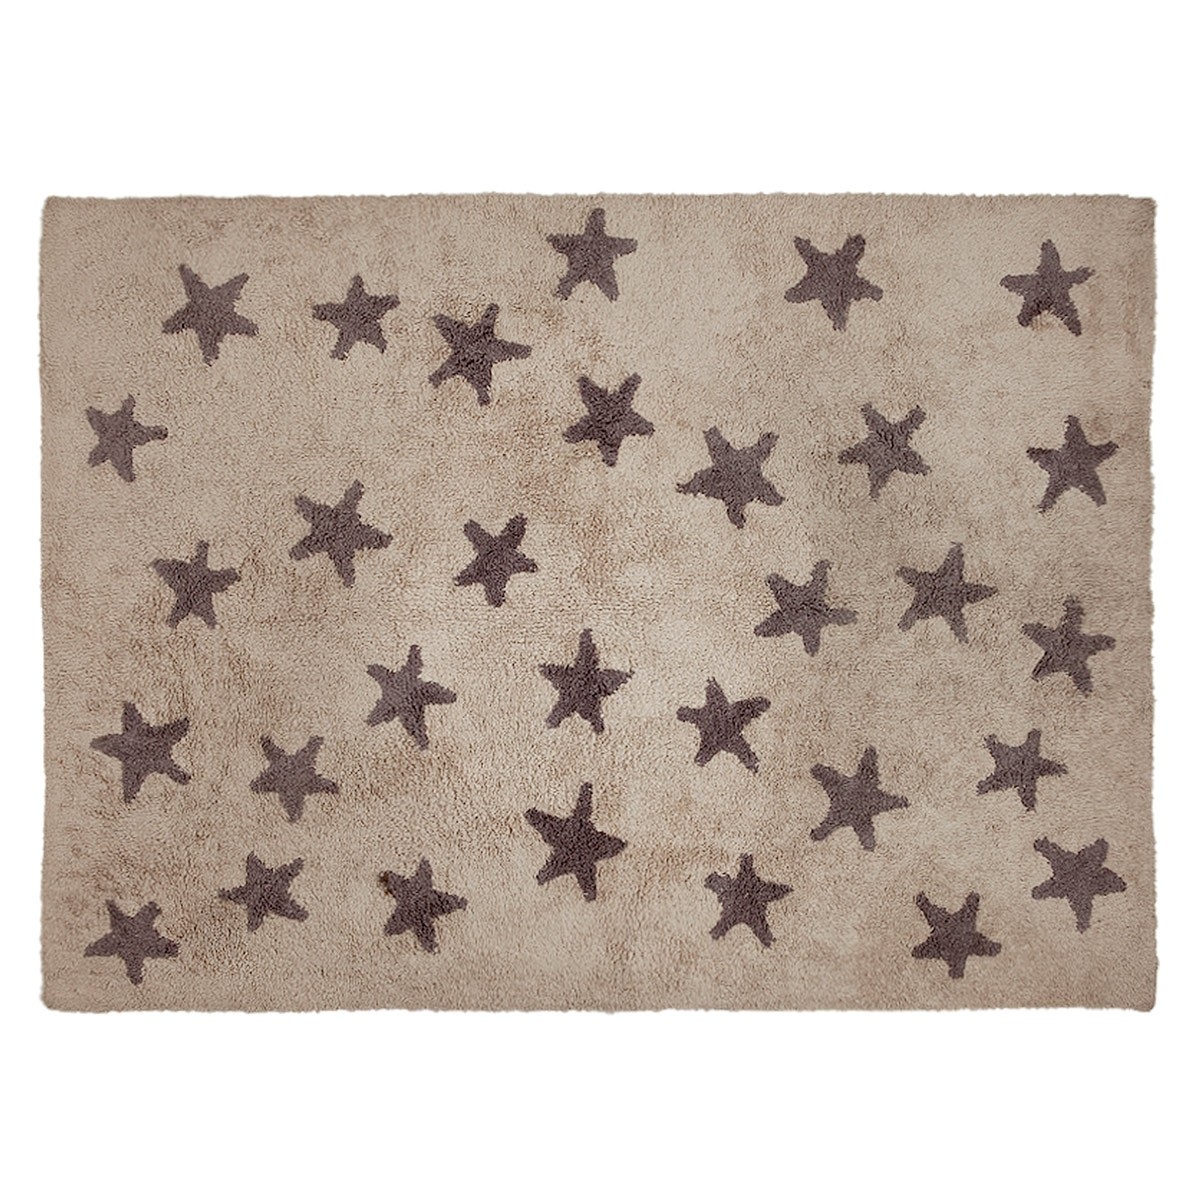 Πλενόμενο Χαλί (120x160) Lorena Canals Messy Stars Linen-Grey